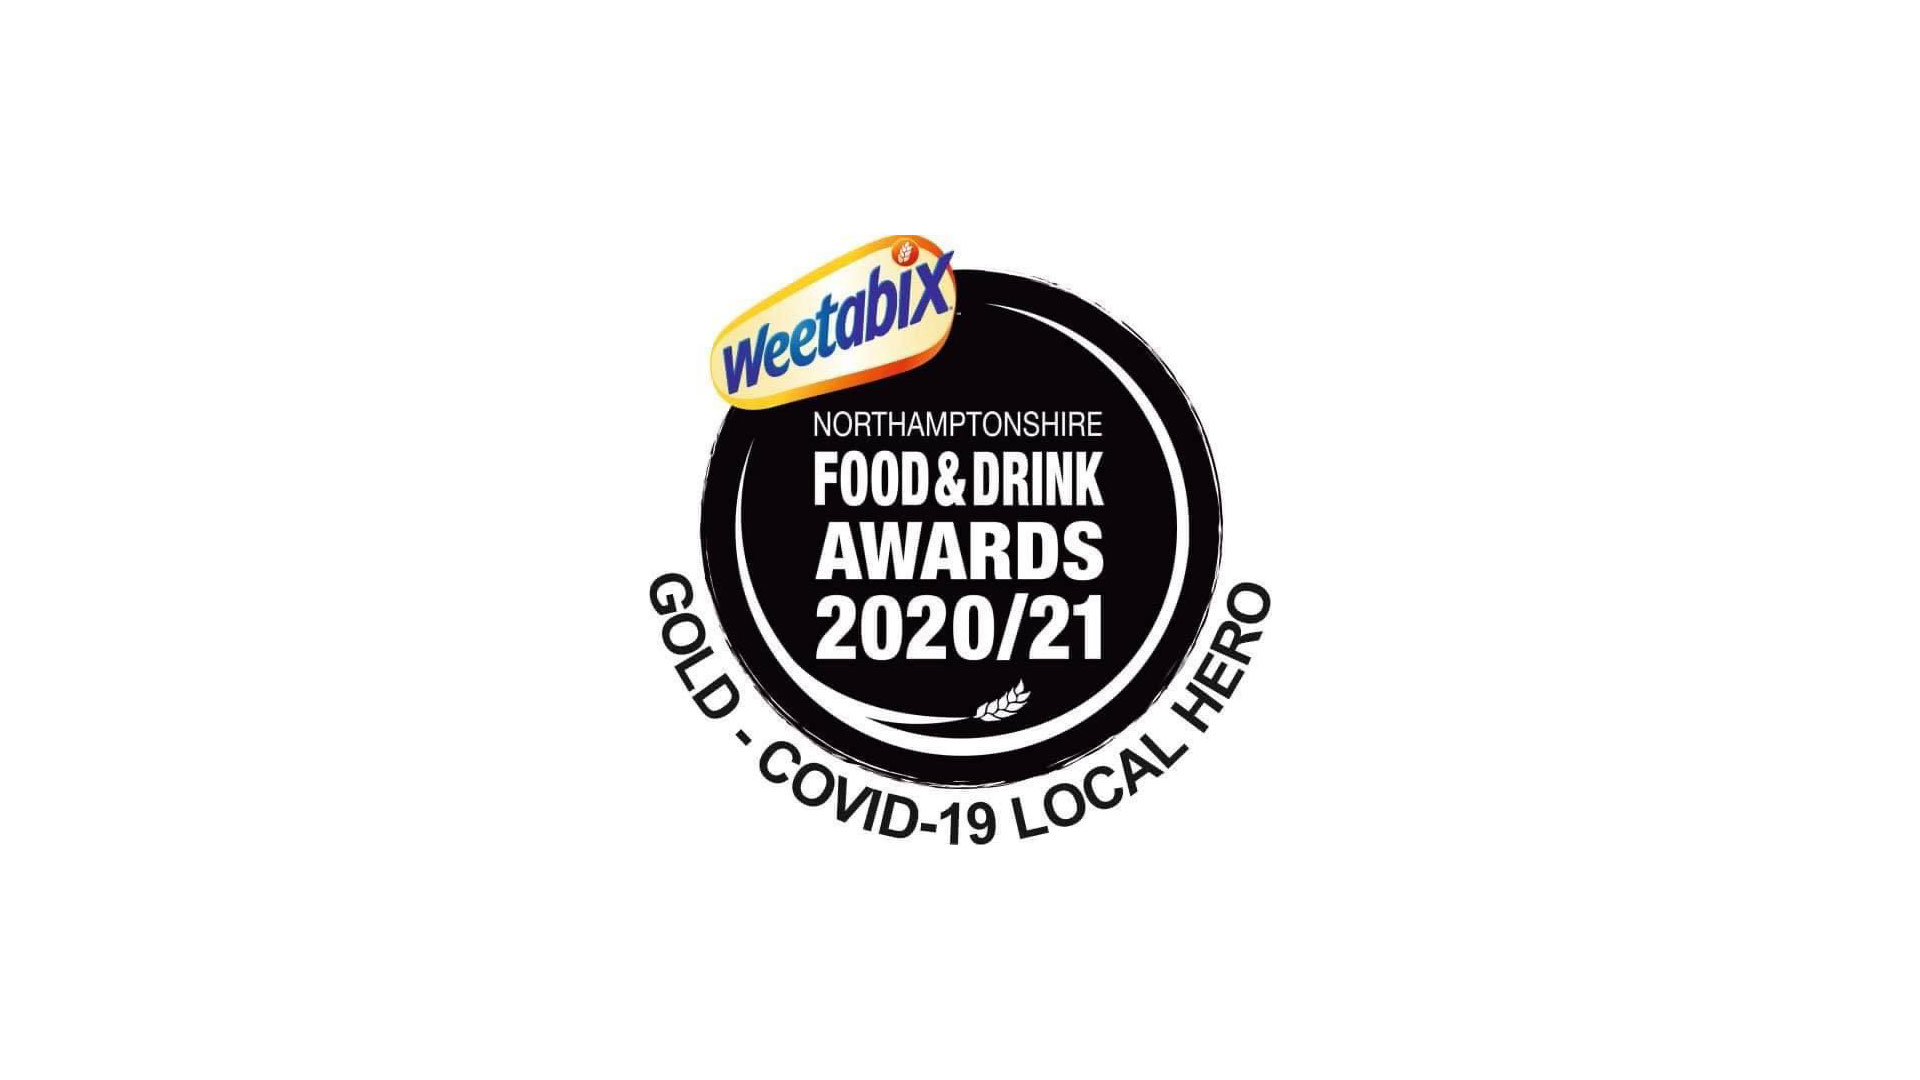 The McCarthy-Dixon Foundation were awarded the Weetabix Northamptonshire Food & Drink Awards 20/21 Gold - COVID-19 Local Hero Award